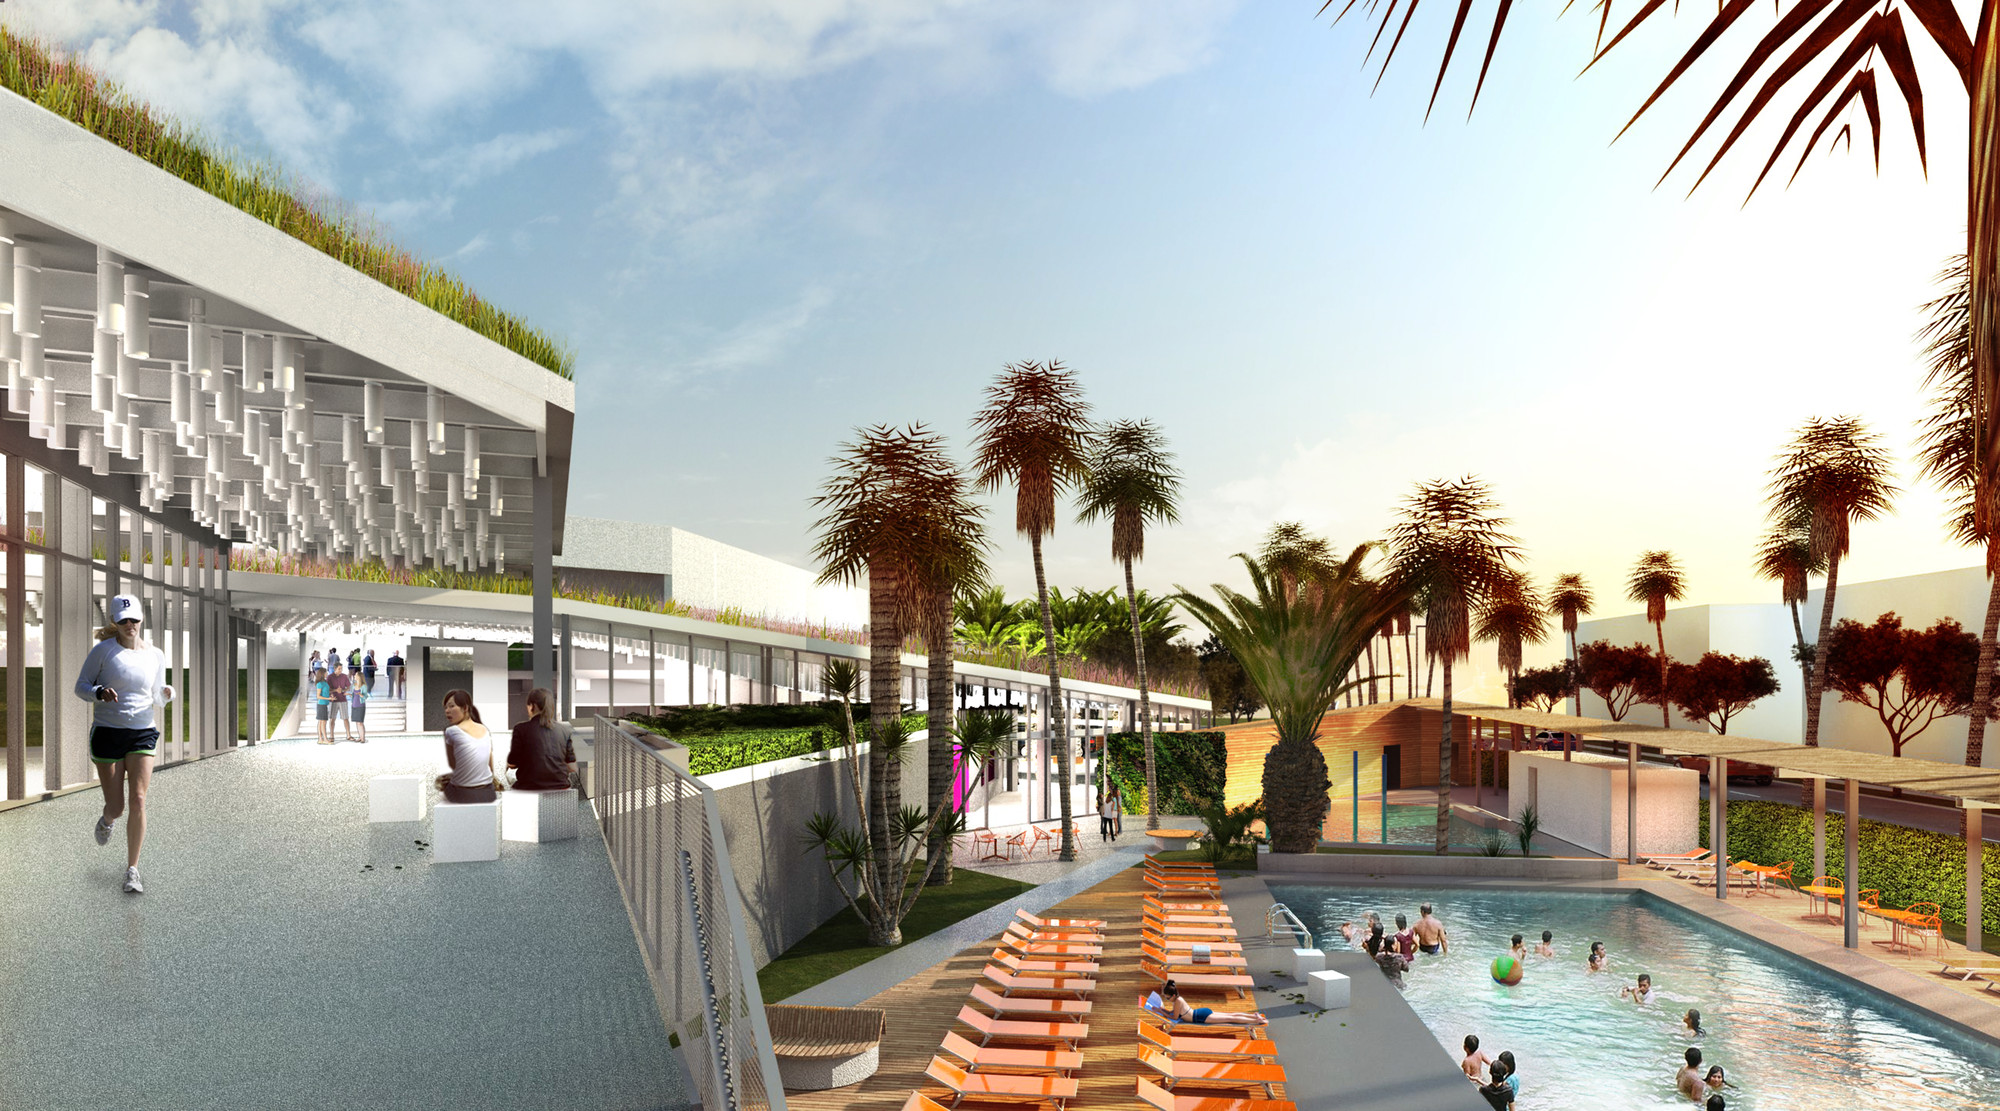 The Resort at Playa Vista © Model –Tom Bonner